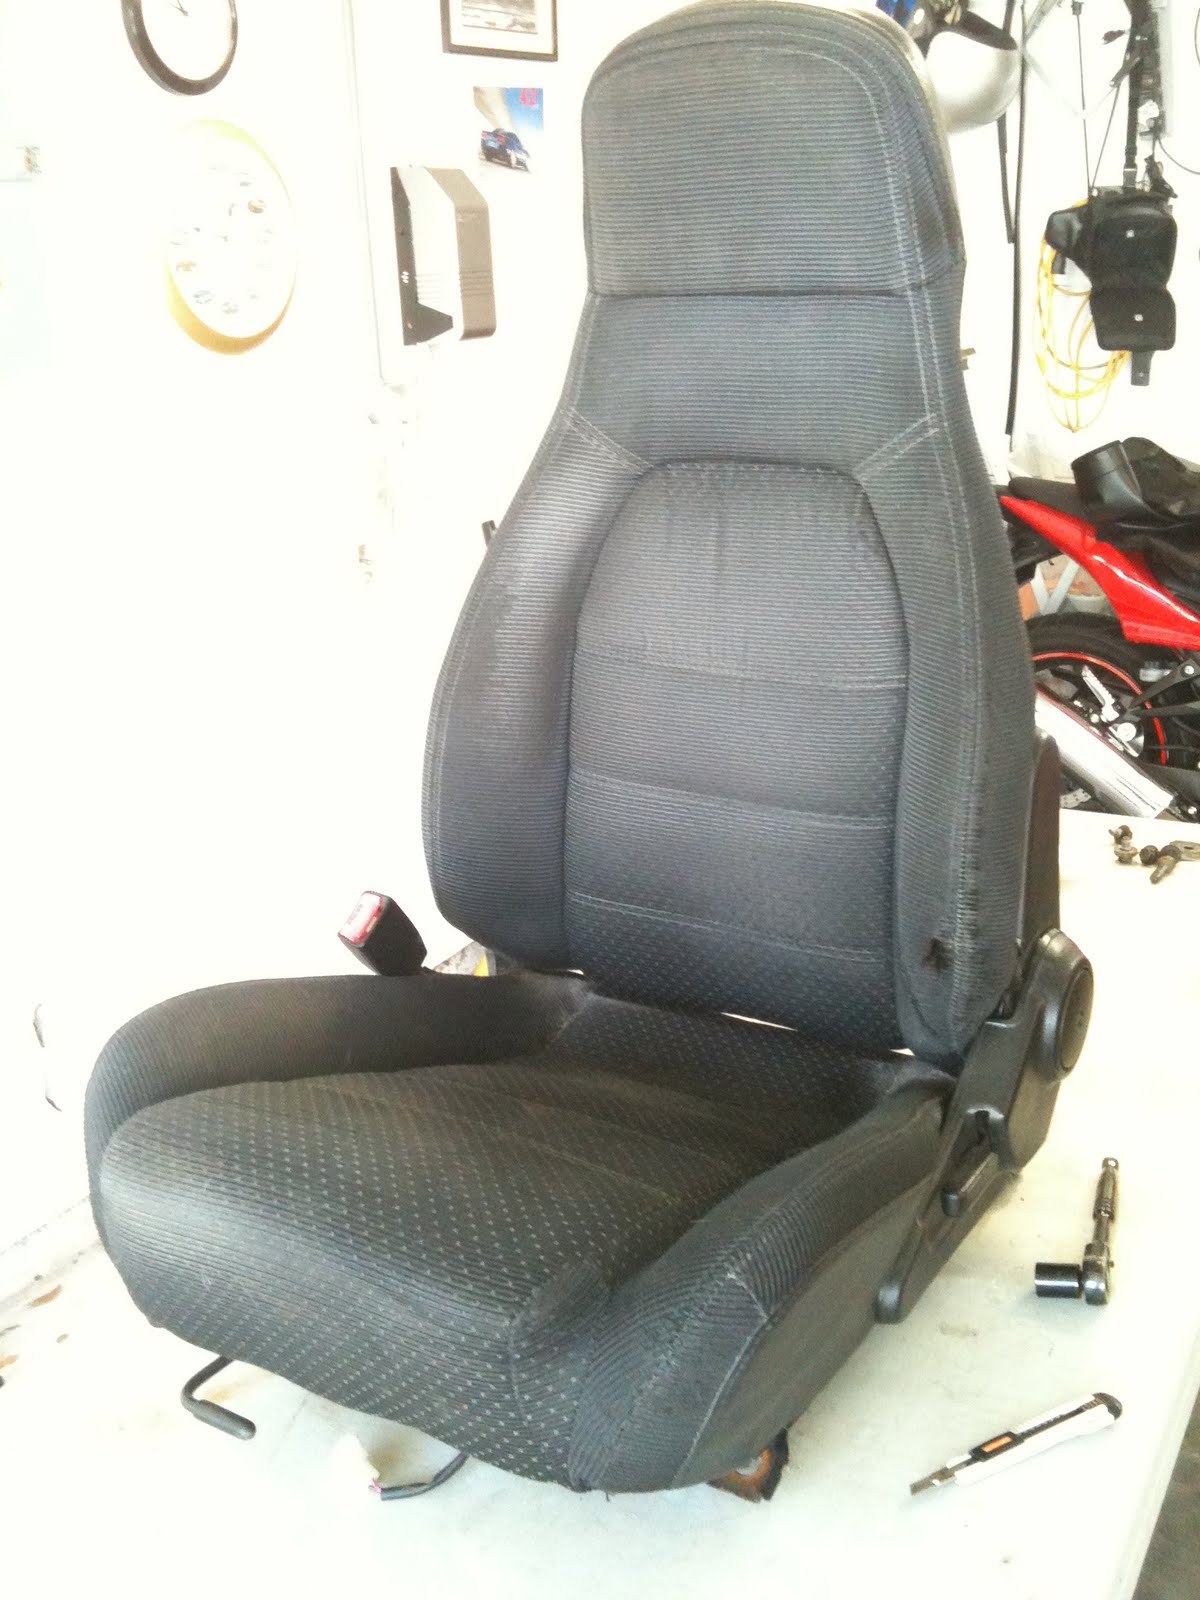 Astonishing Morrisons Garage Iggee Leatherette Seatcovers Bralicious Painted Fabric Chair Ideas Braliciousco